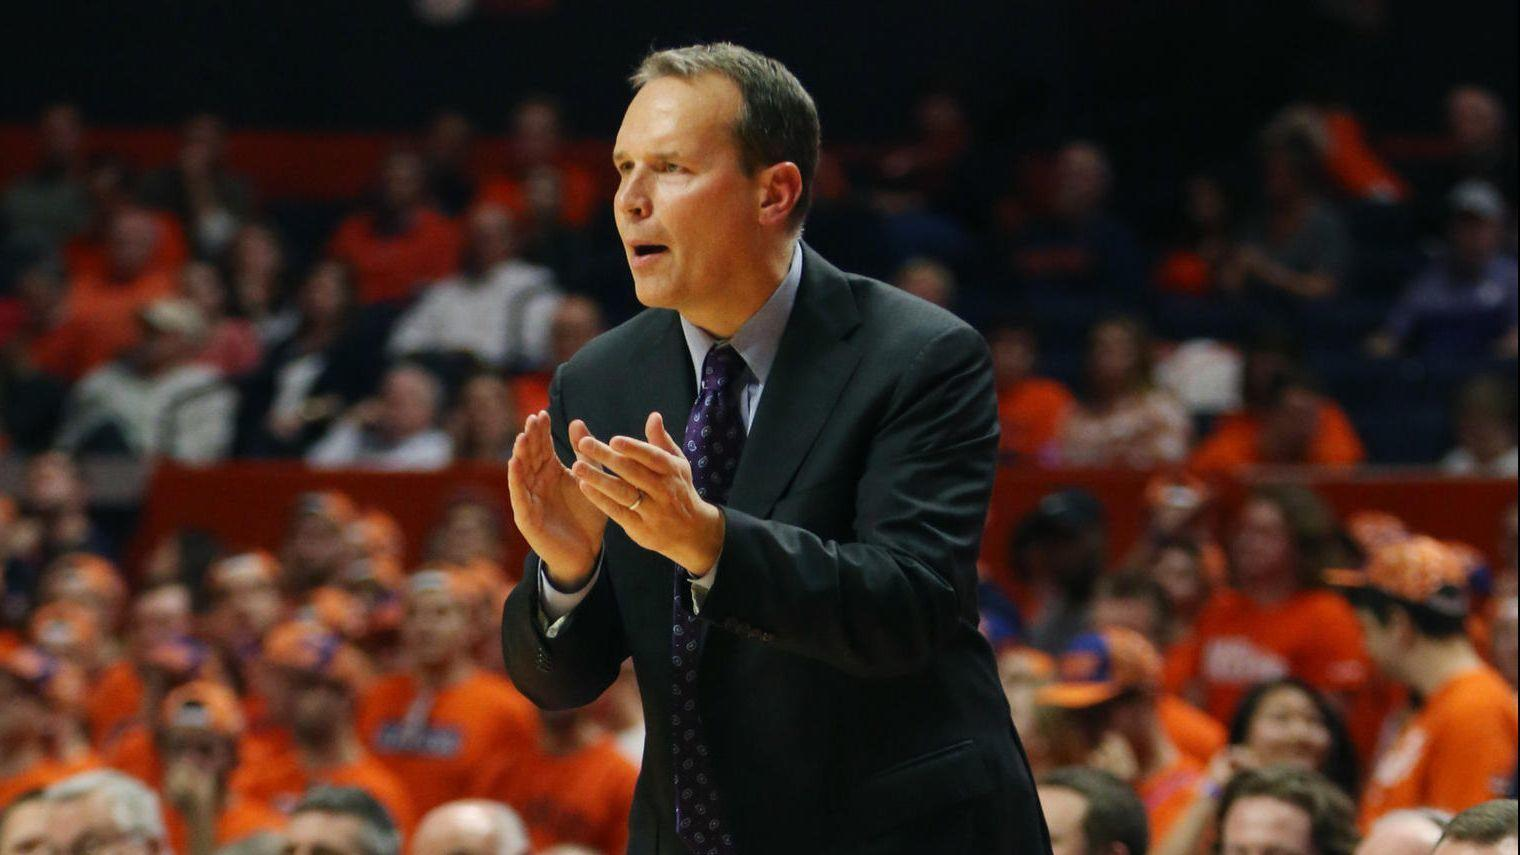 Northwestern looks to fill vacancy on basketball coaching staff with top assistant at NIU